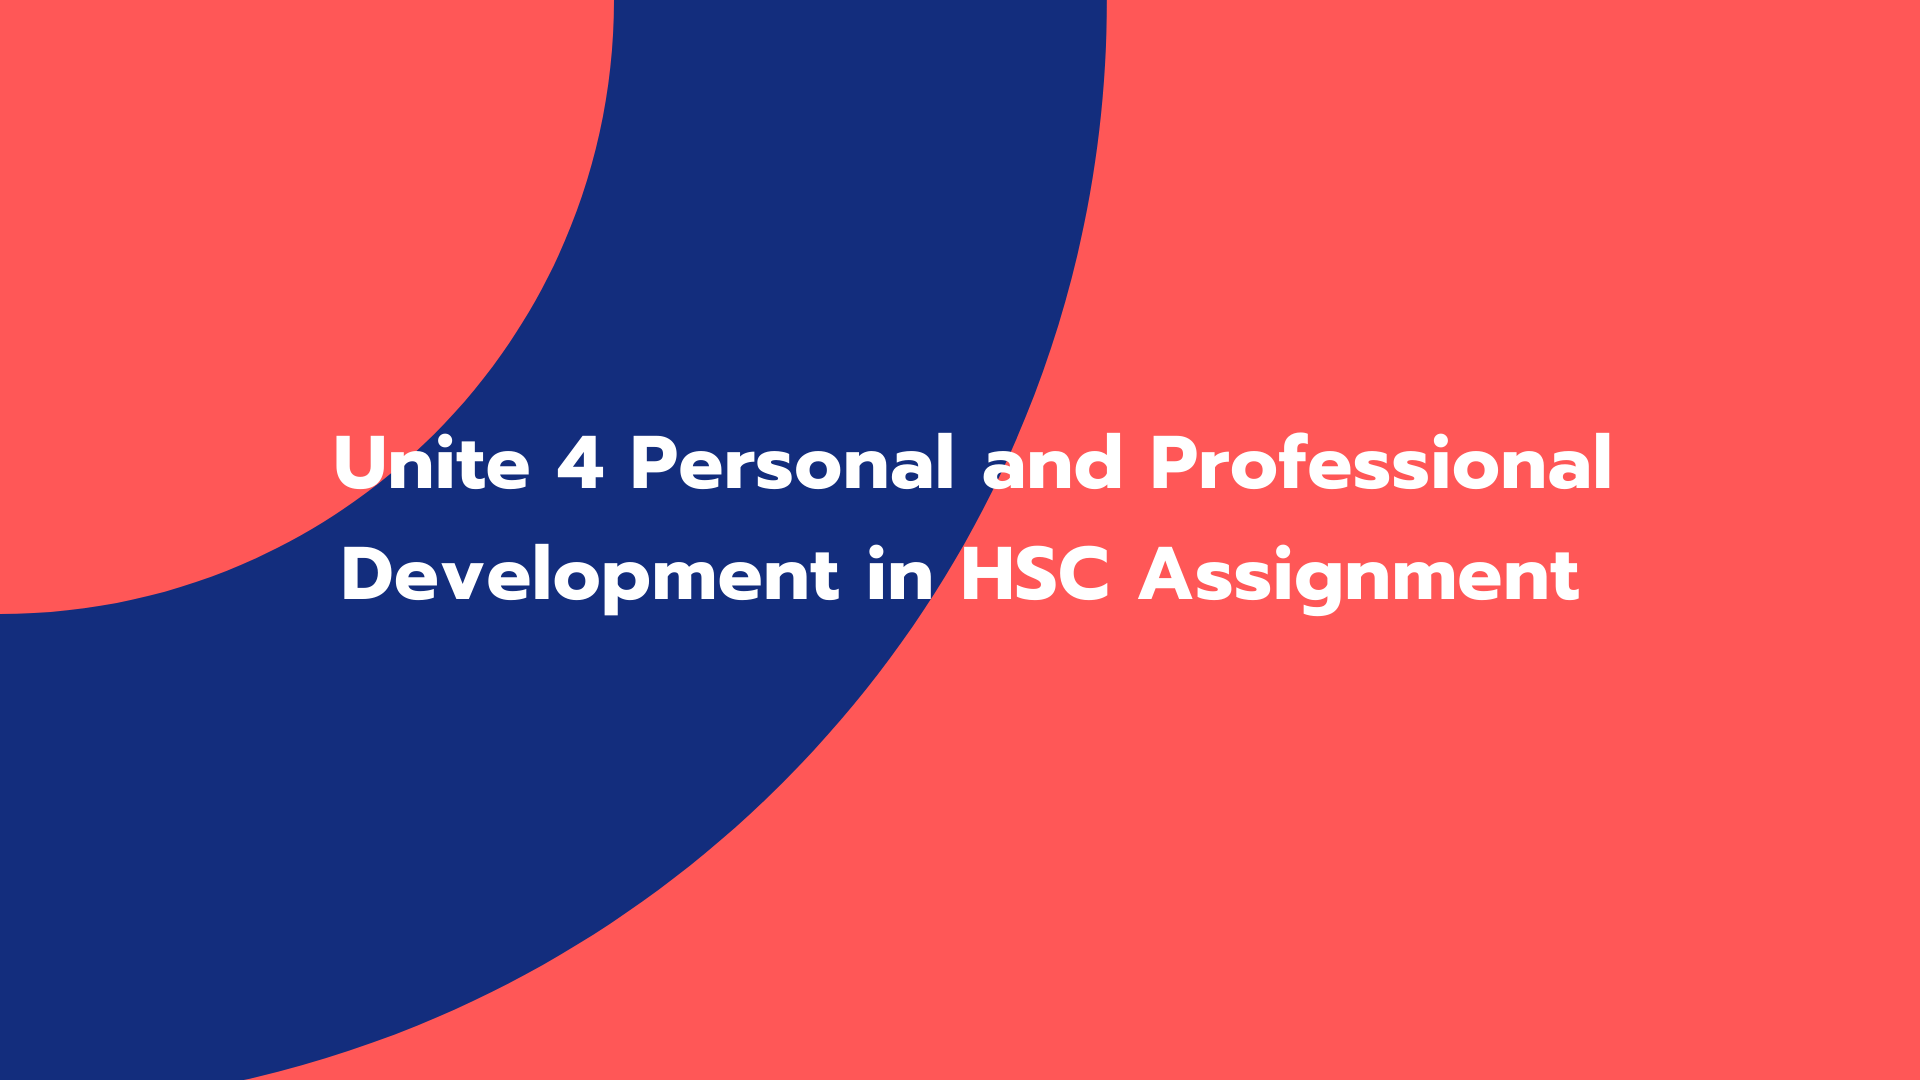 Unite 4 Personal and Professional Development in HSC Assignment